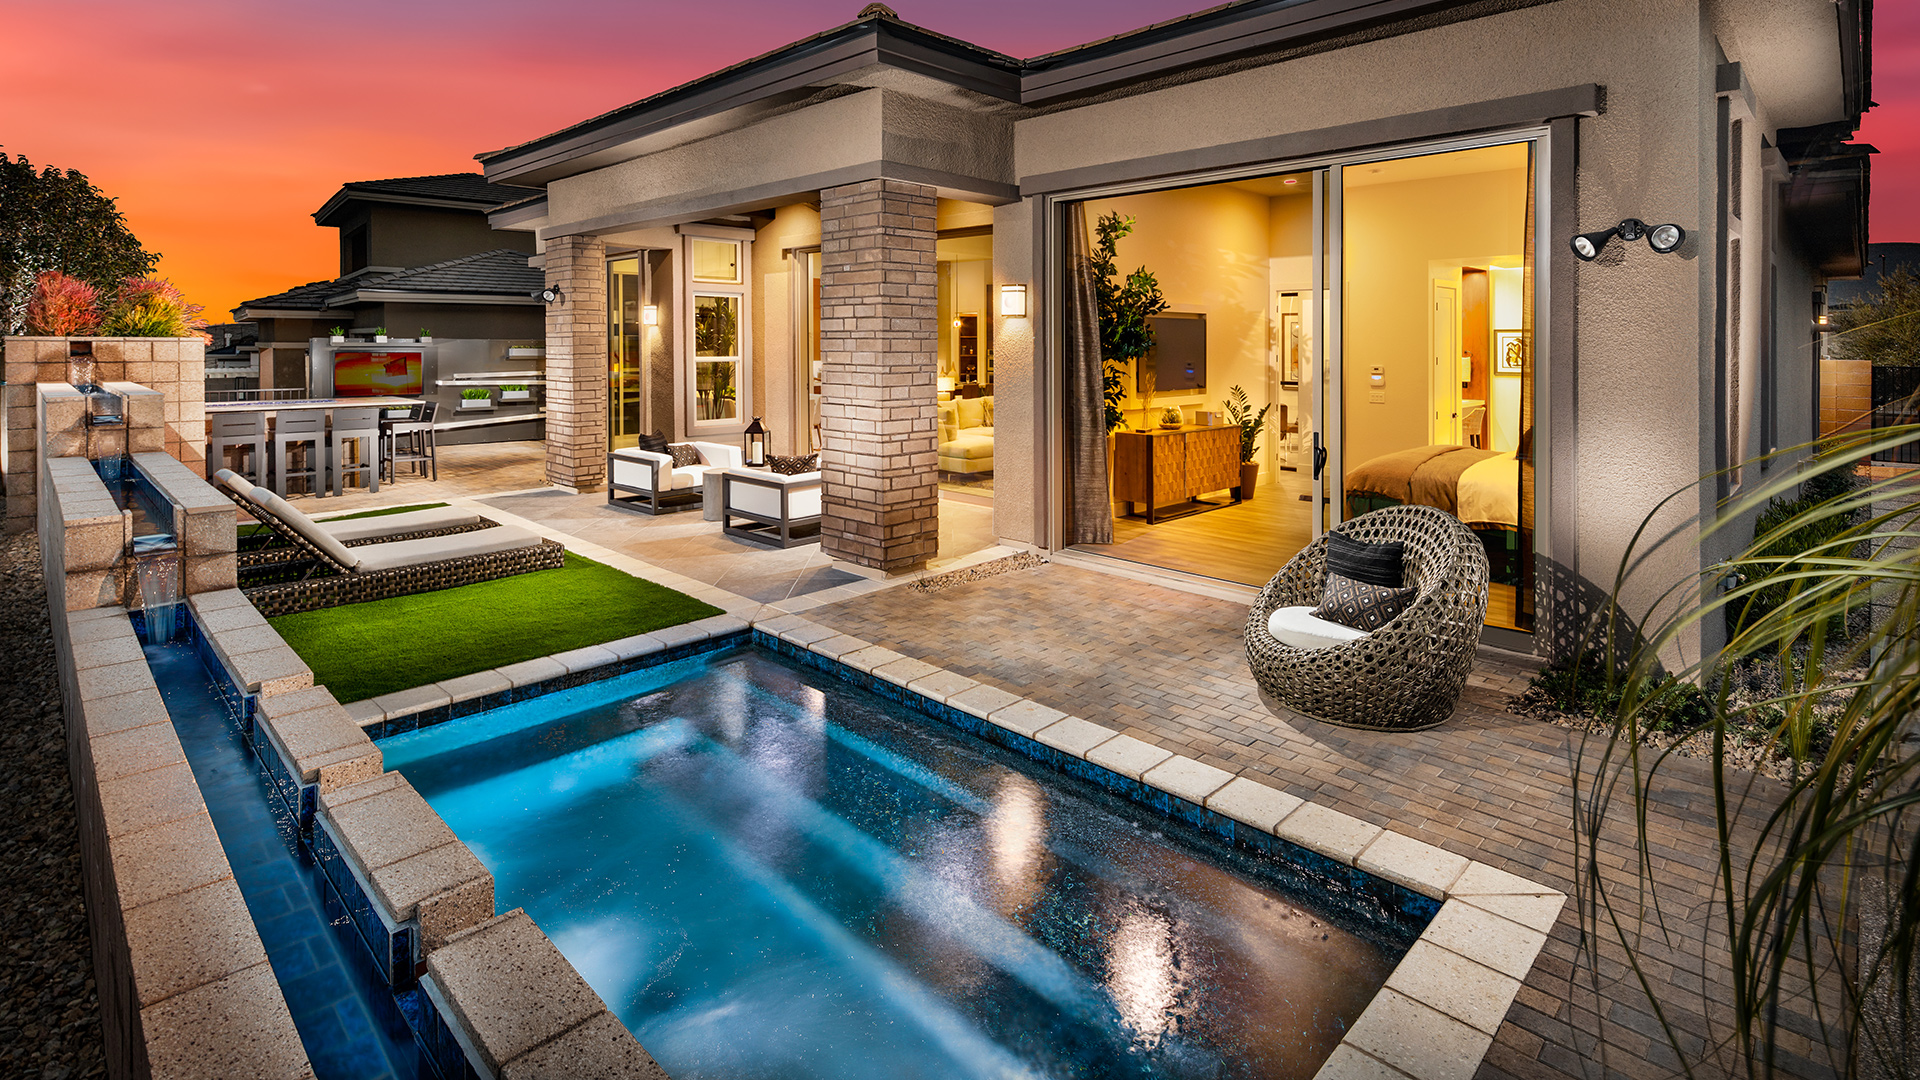 toll brothers las vegas - toll brothers summerlin - toll brothers granite heights - toll brothers ironwood - toll brothers homes for sale